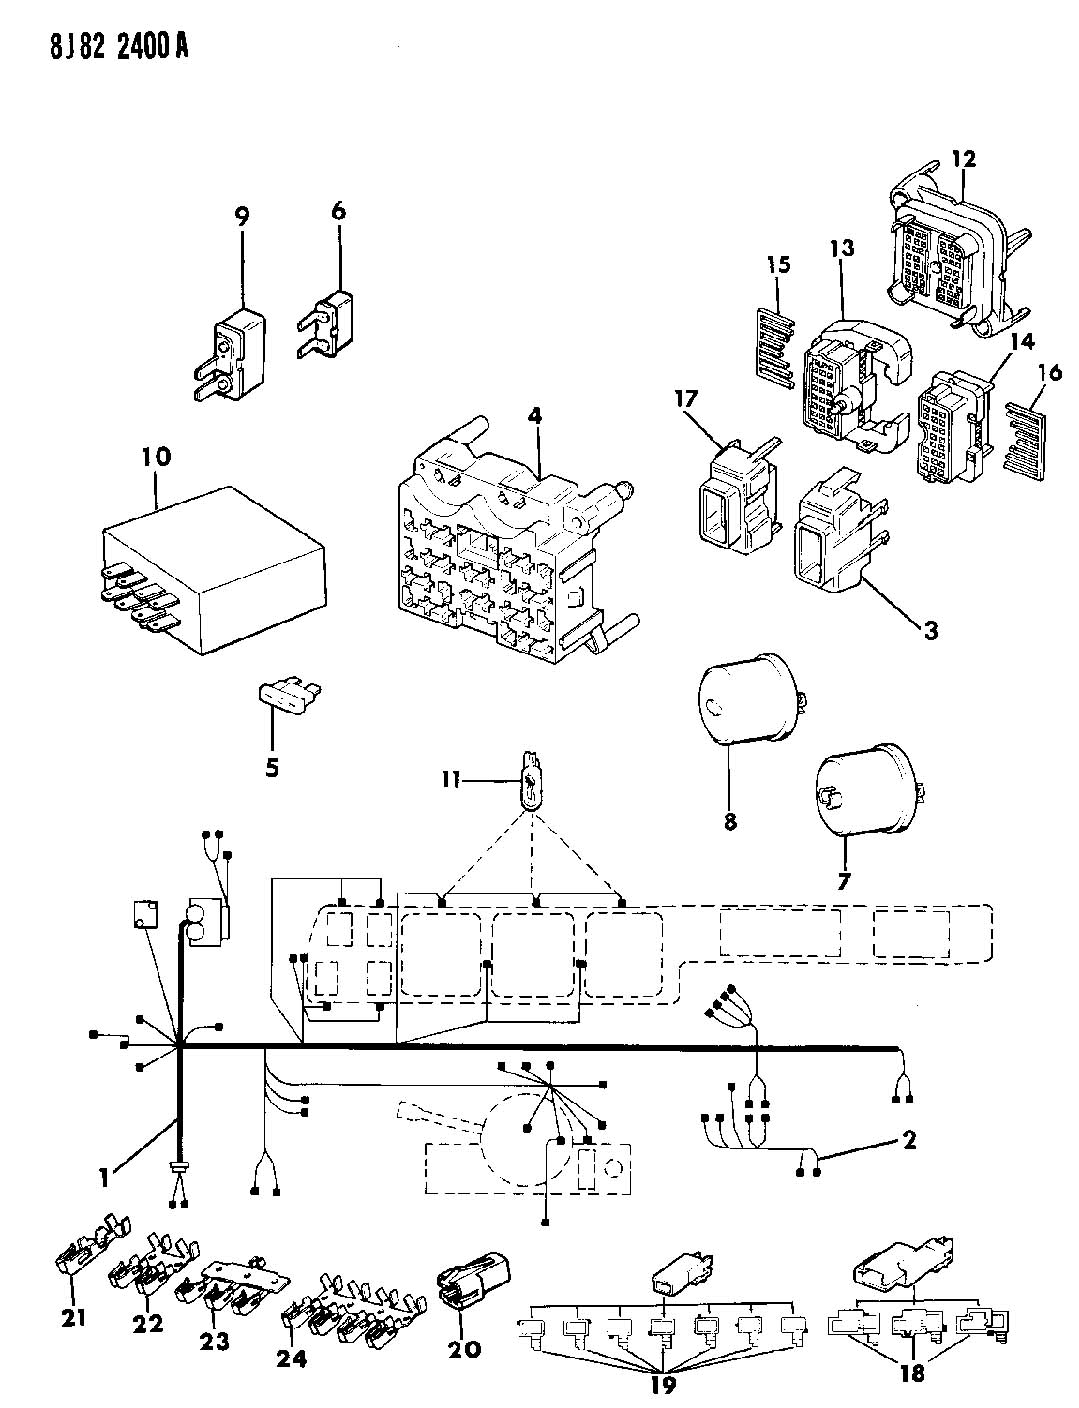 Showassembly 000019er jeep j20 wiring diagram at ww w freeautoresponder co